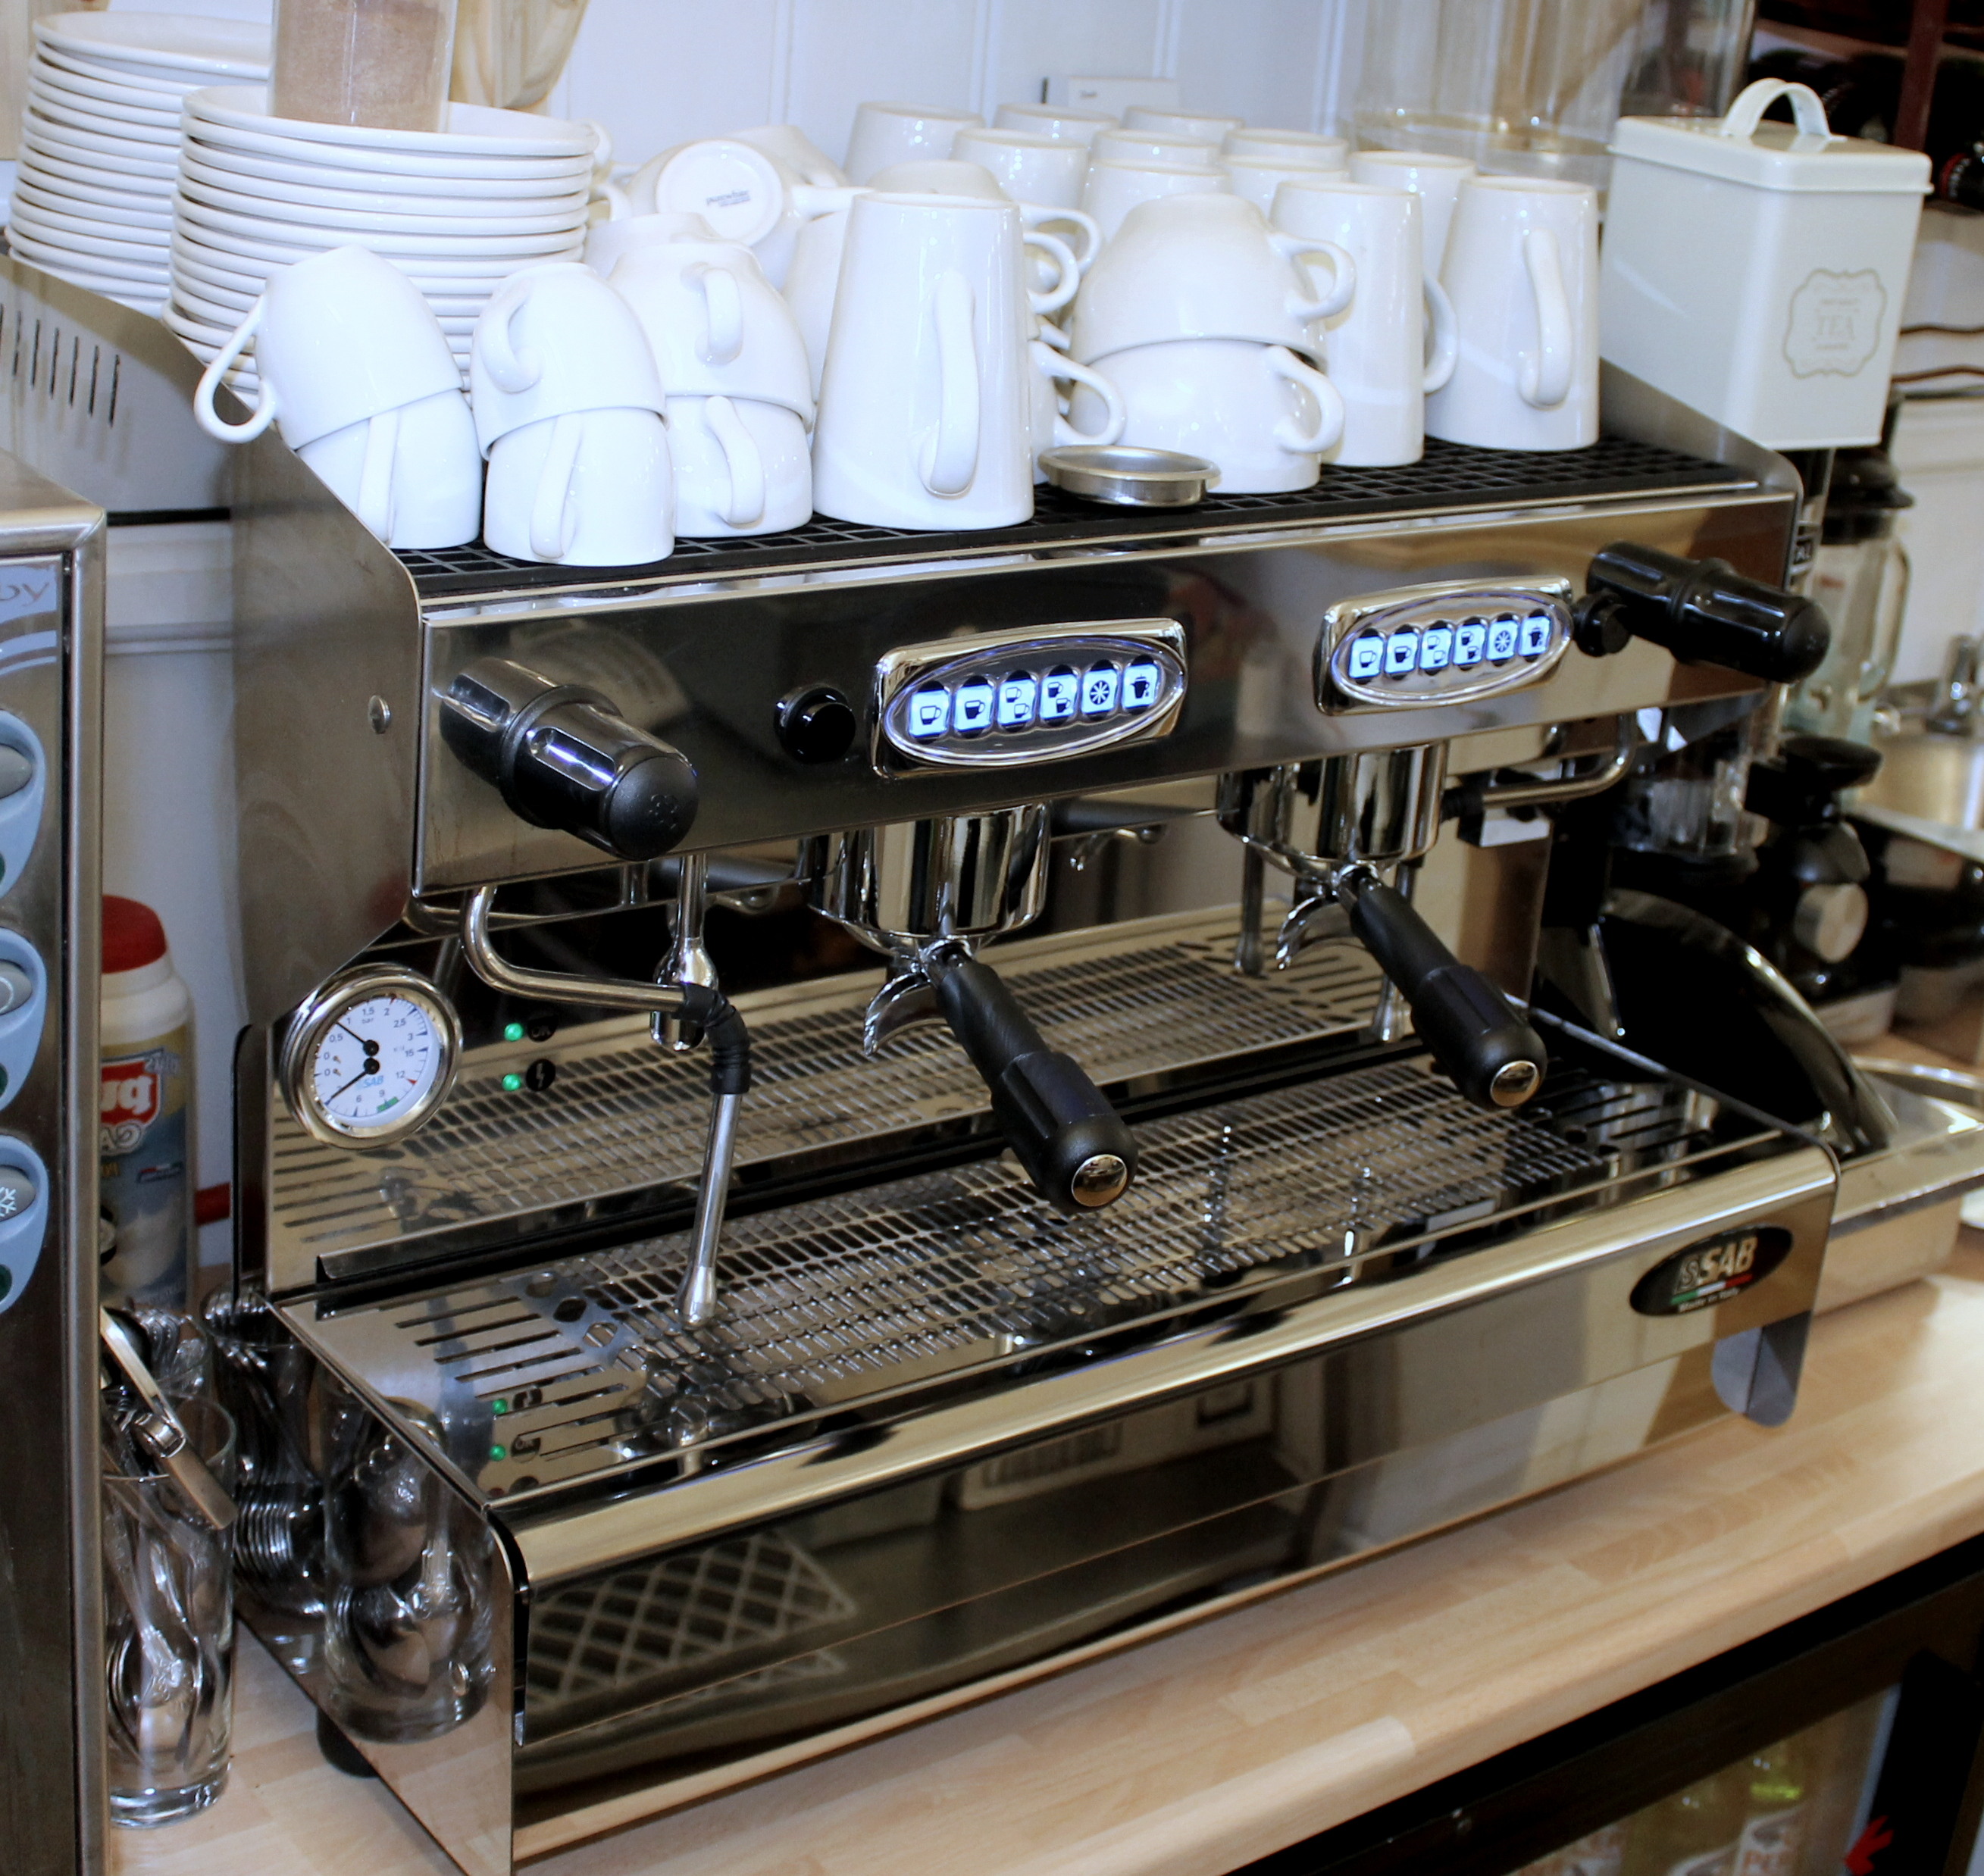 Electronic Jura Coffee Machine For Sale jura coffee machines bean to cup commercial automatic equipment espresso machines